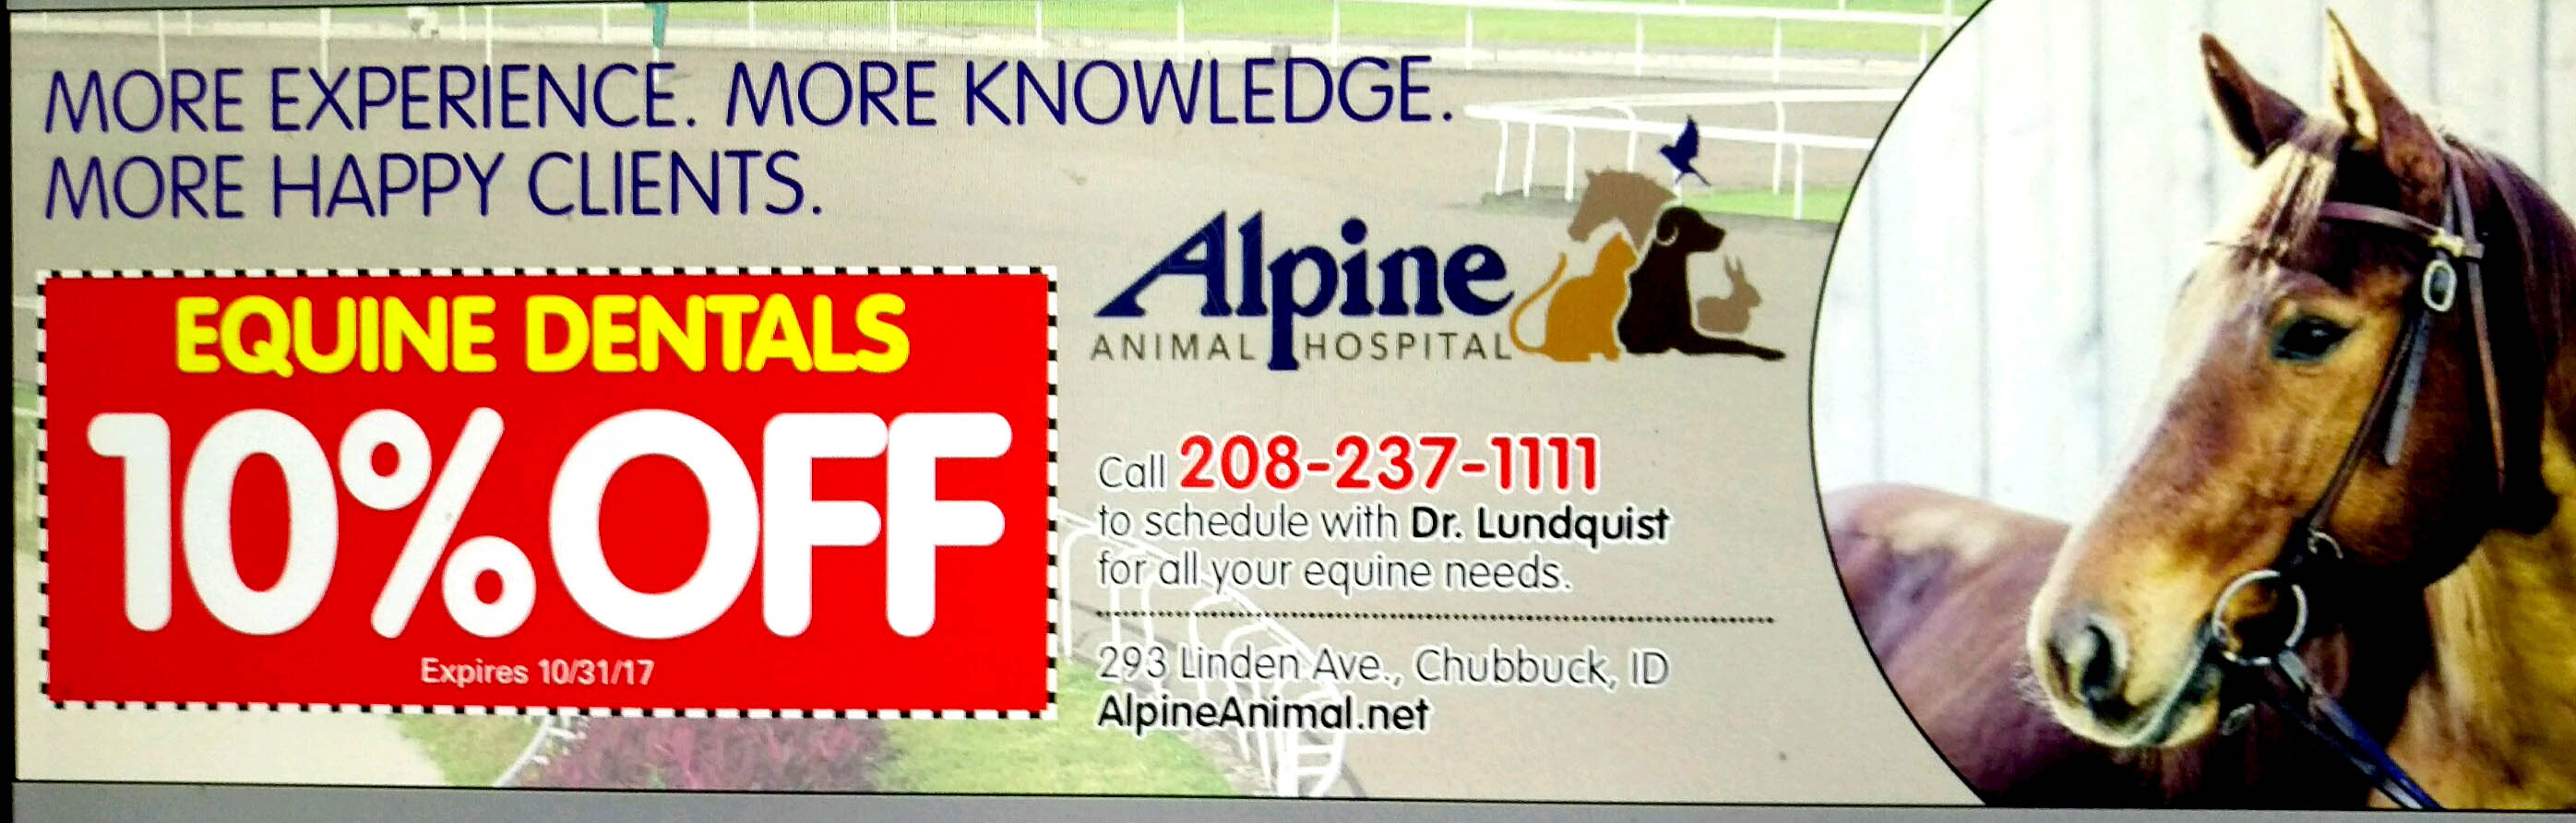 ad for equine dental discount